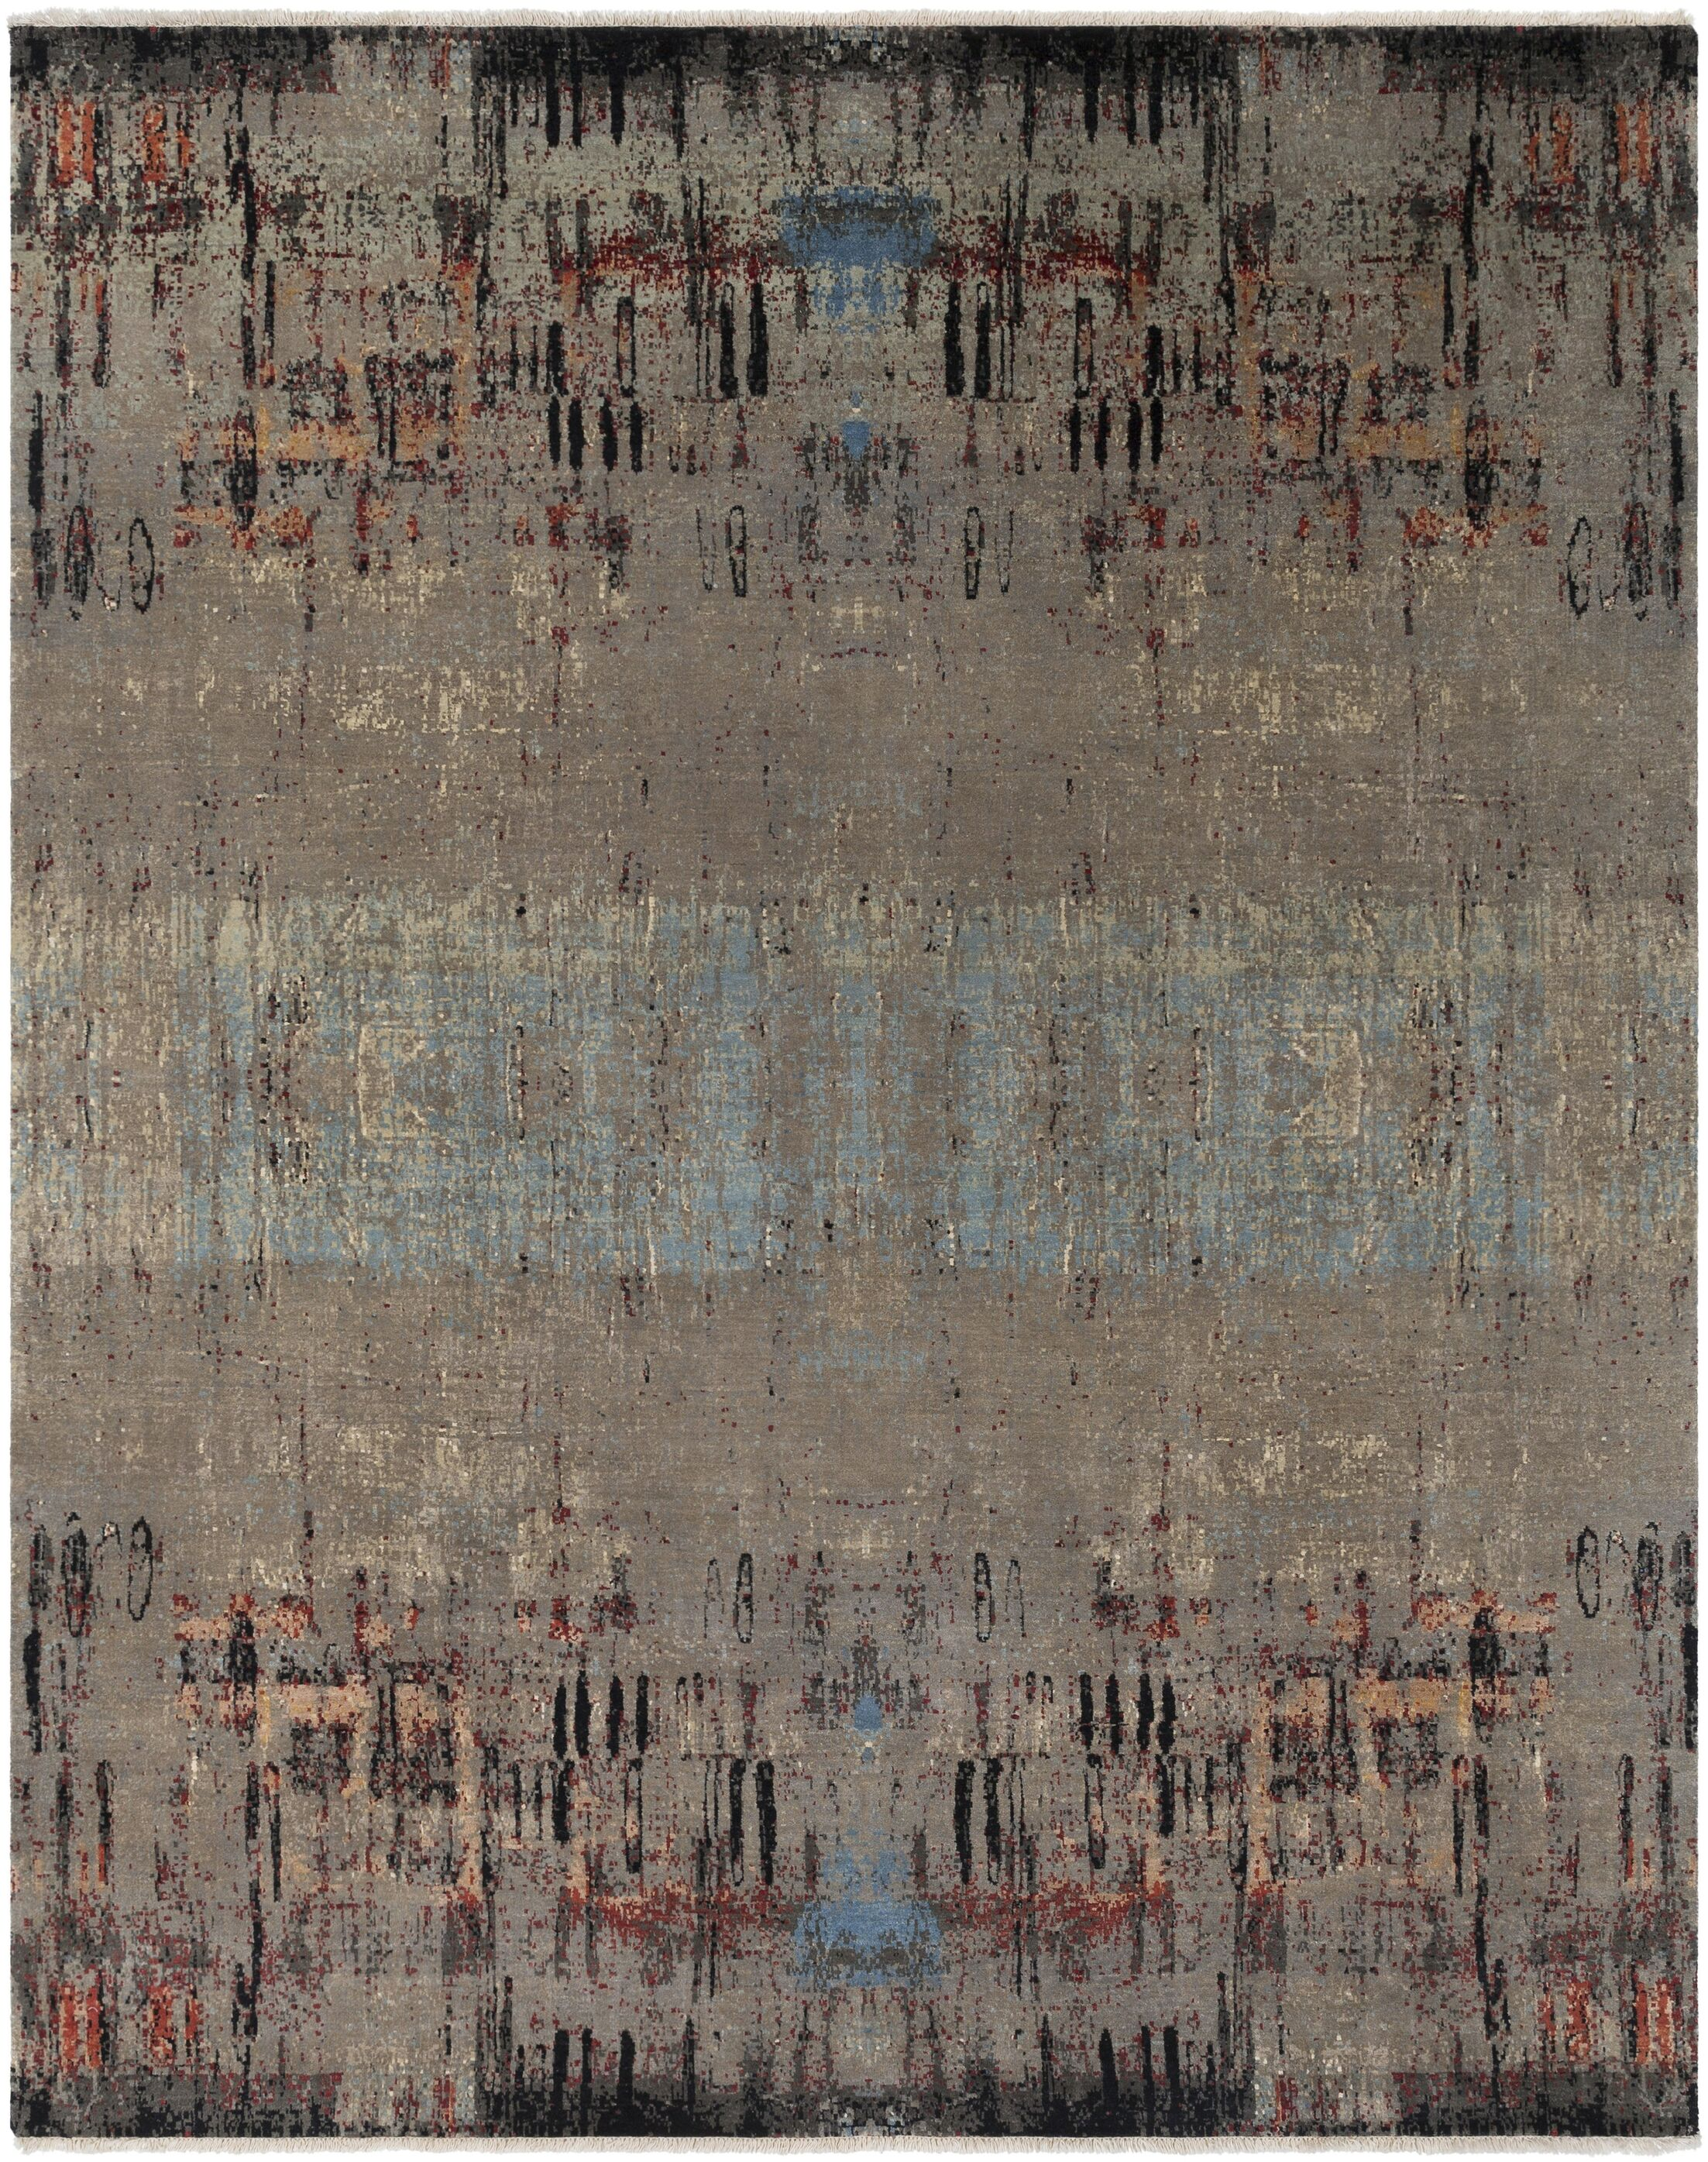 Cleve Hand-Knotted Camel/Aqua Area Rug Rug Size: Rectangle 8' x 10'